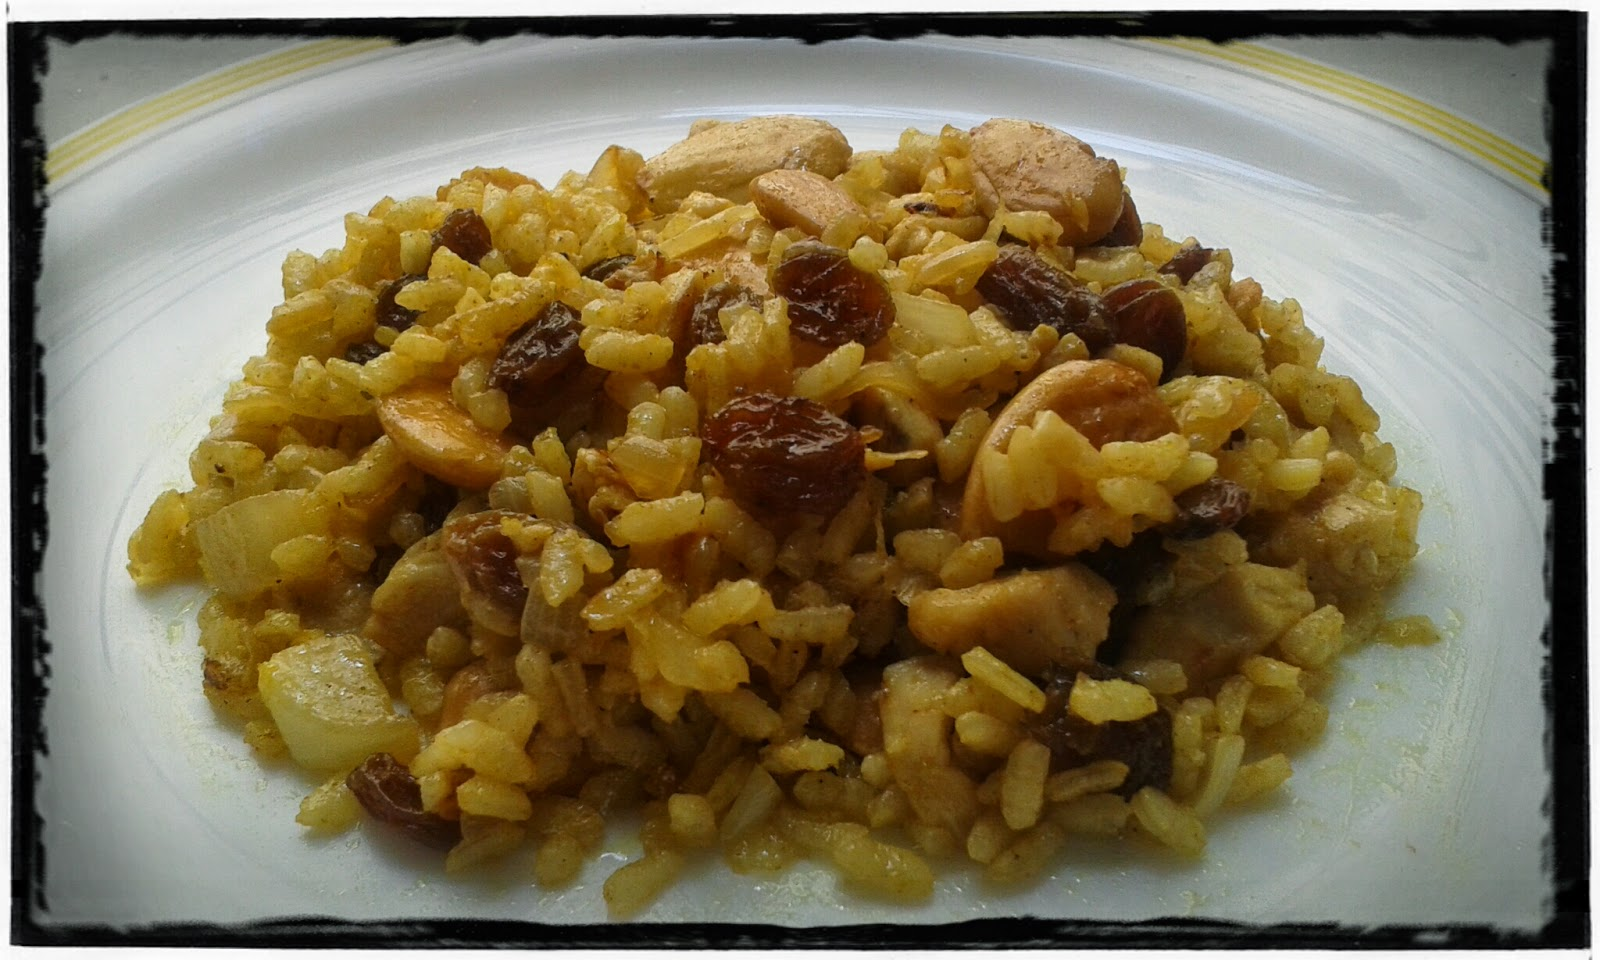 Arroz al curry con pollo, pasas y almendras